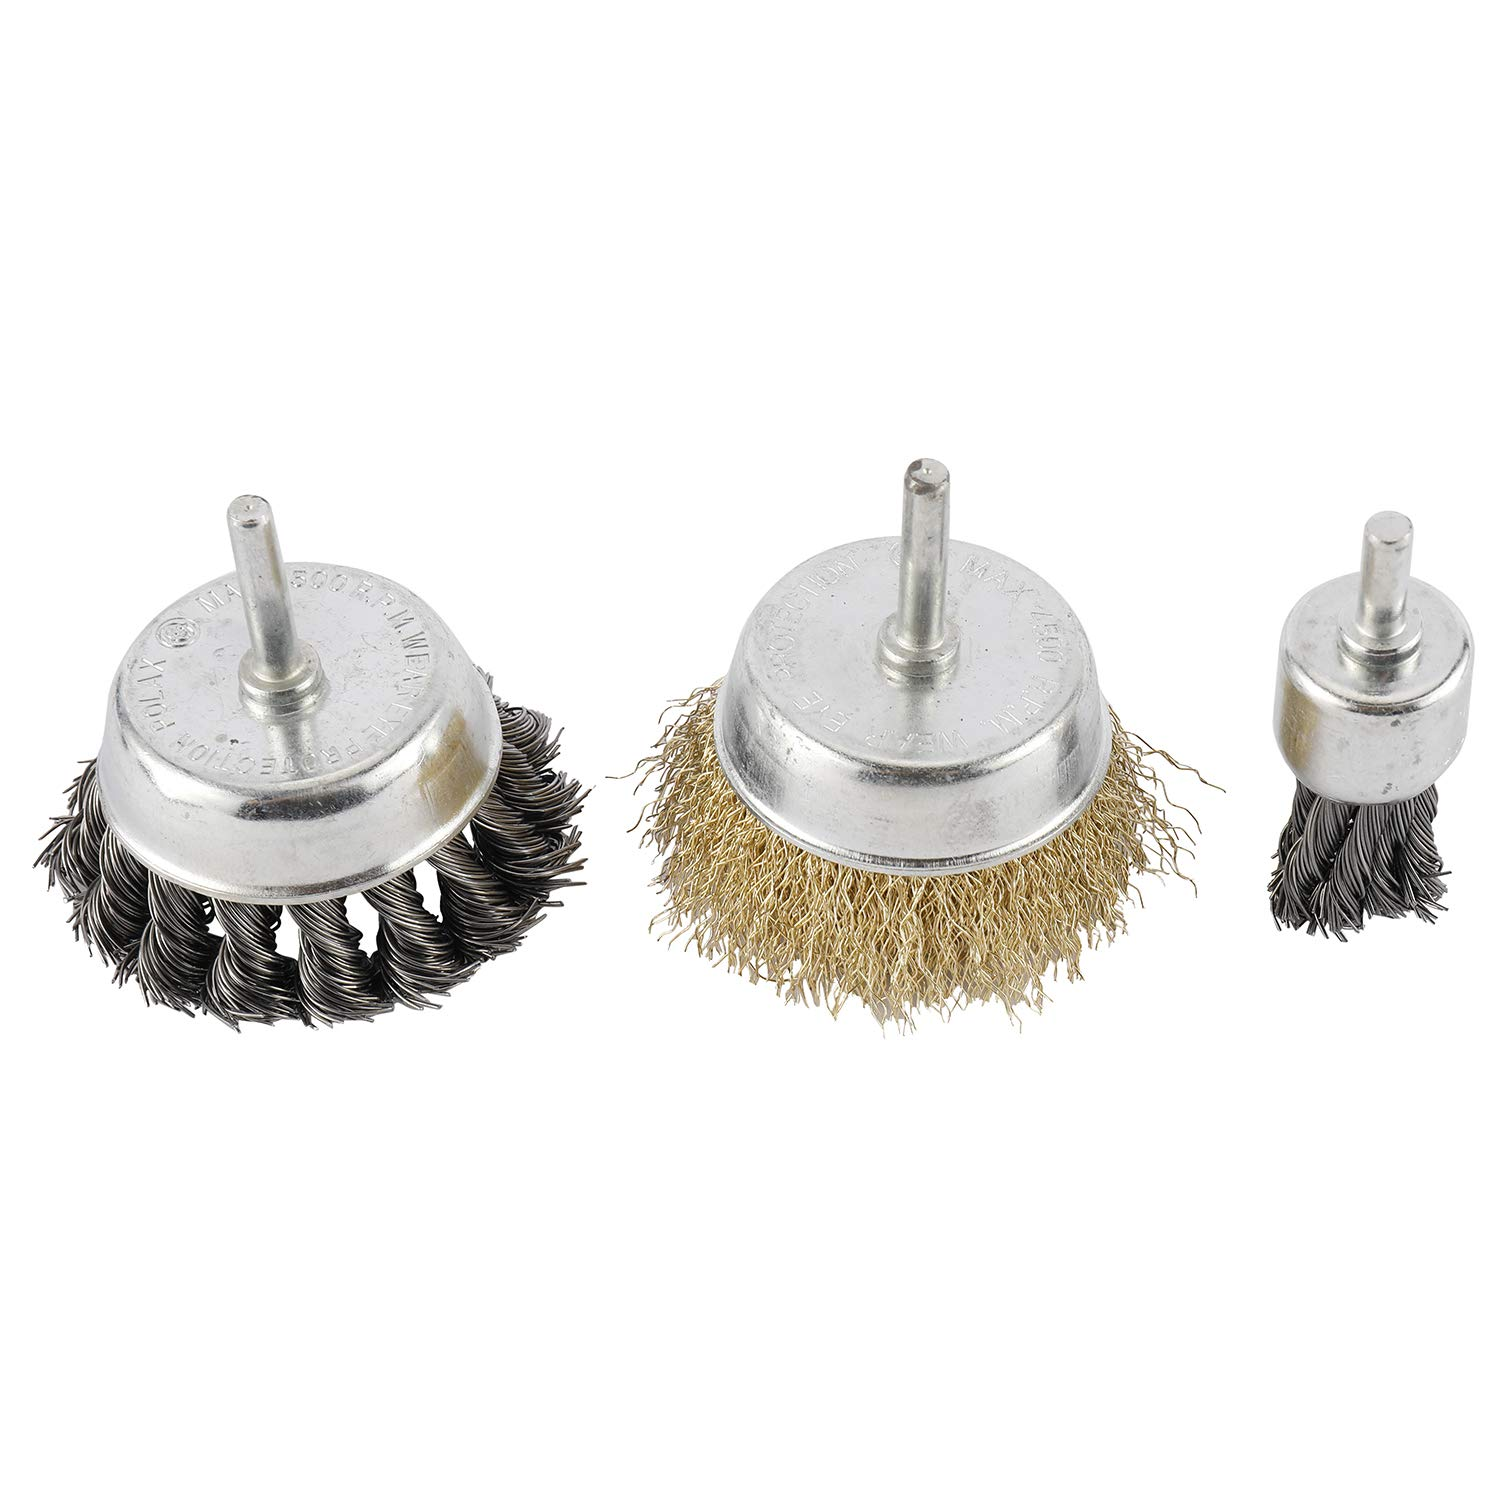 3 Inch Knotted and Plated Crimped and 1-Inch Carbon Knot Wire End Brush Toolly 6 Pack Wire Wheels Brush Cup Wire Wheels Brush Set